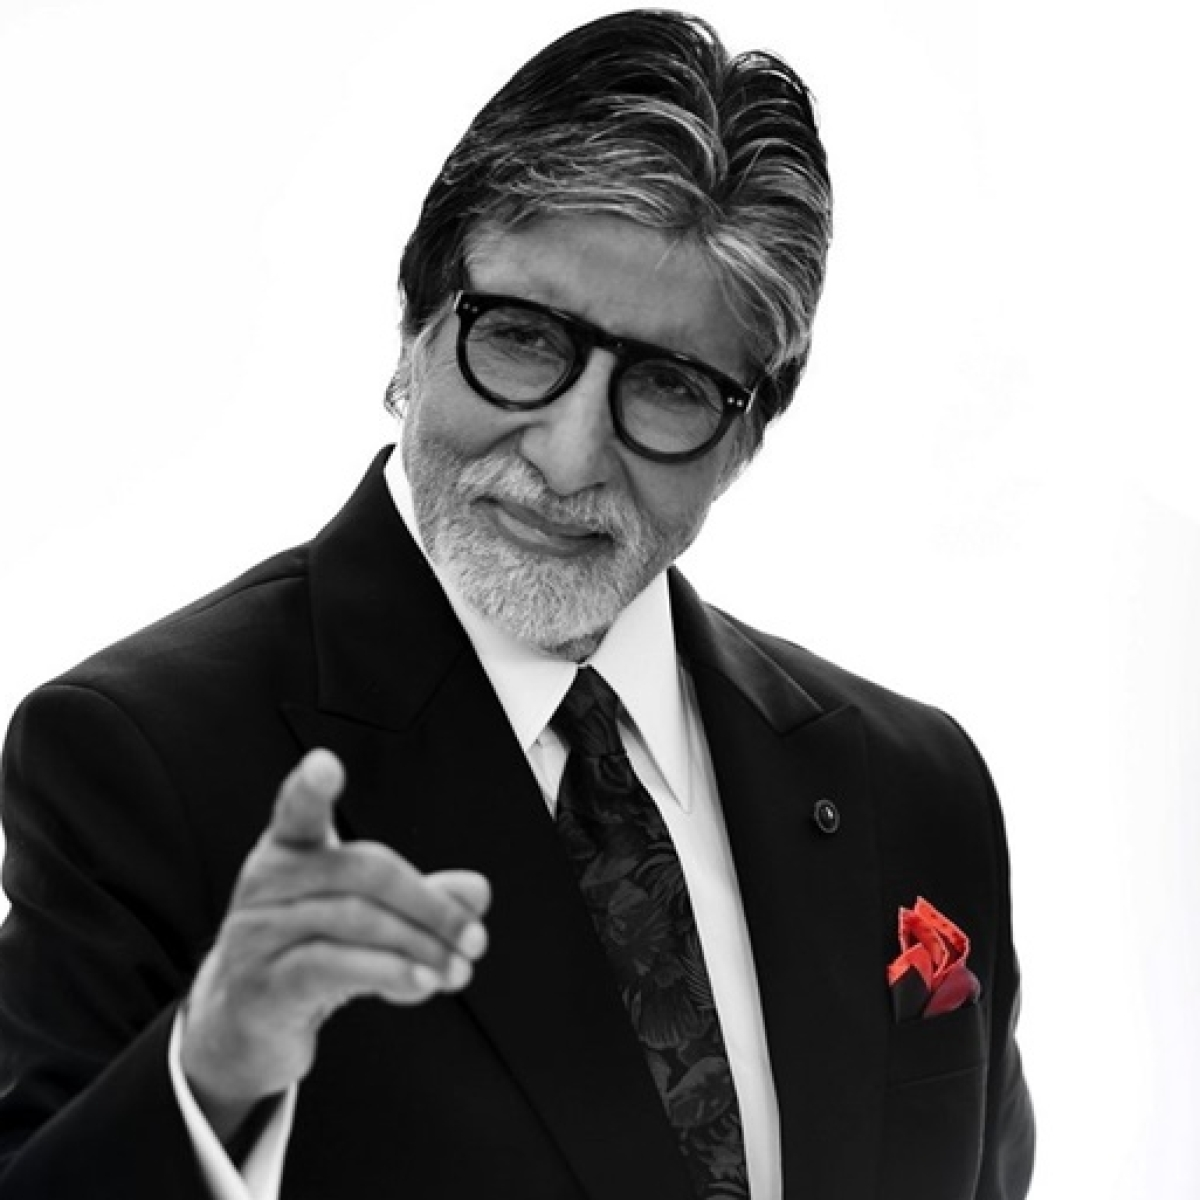 Big B lampooned for his old tweets